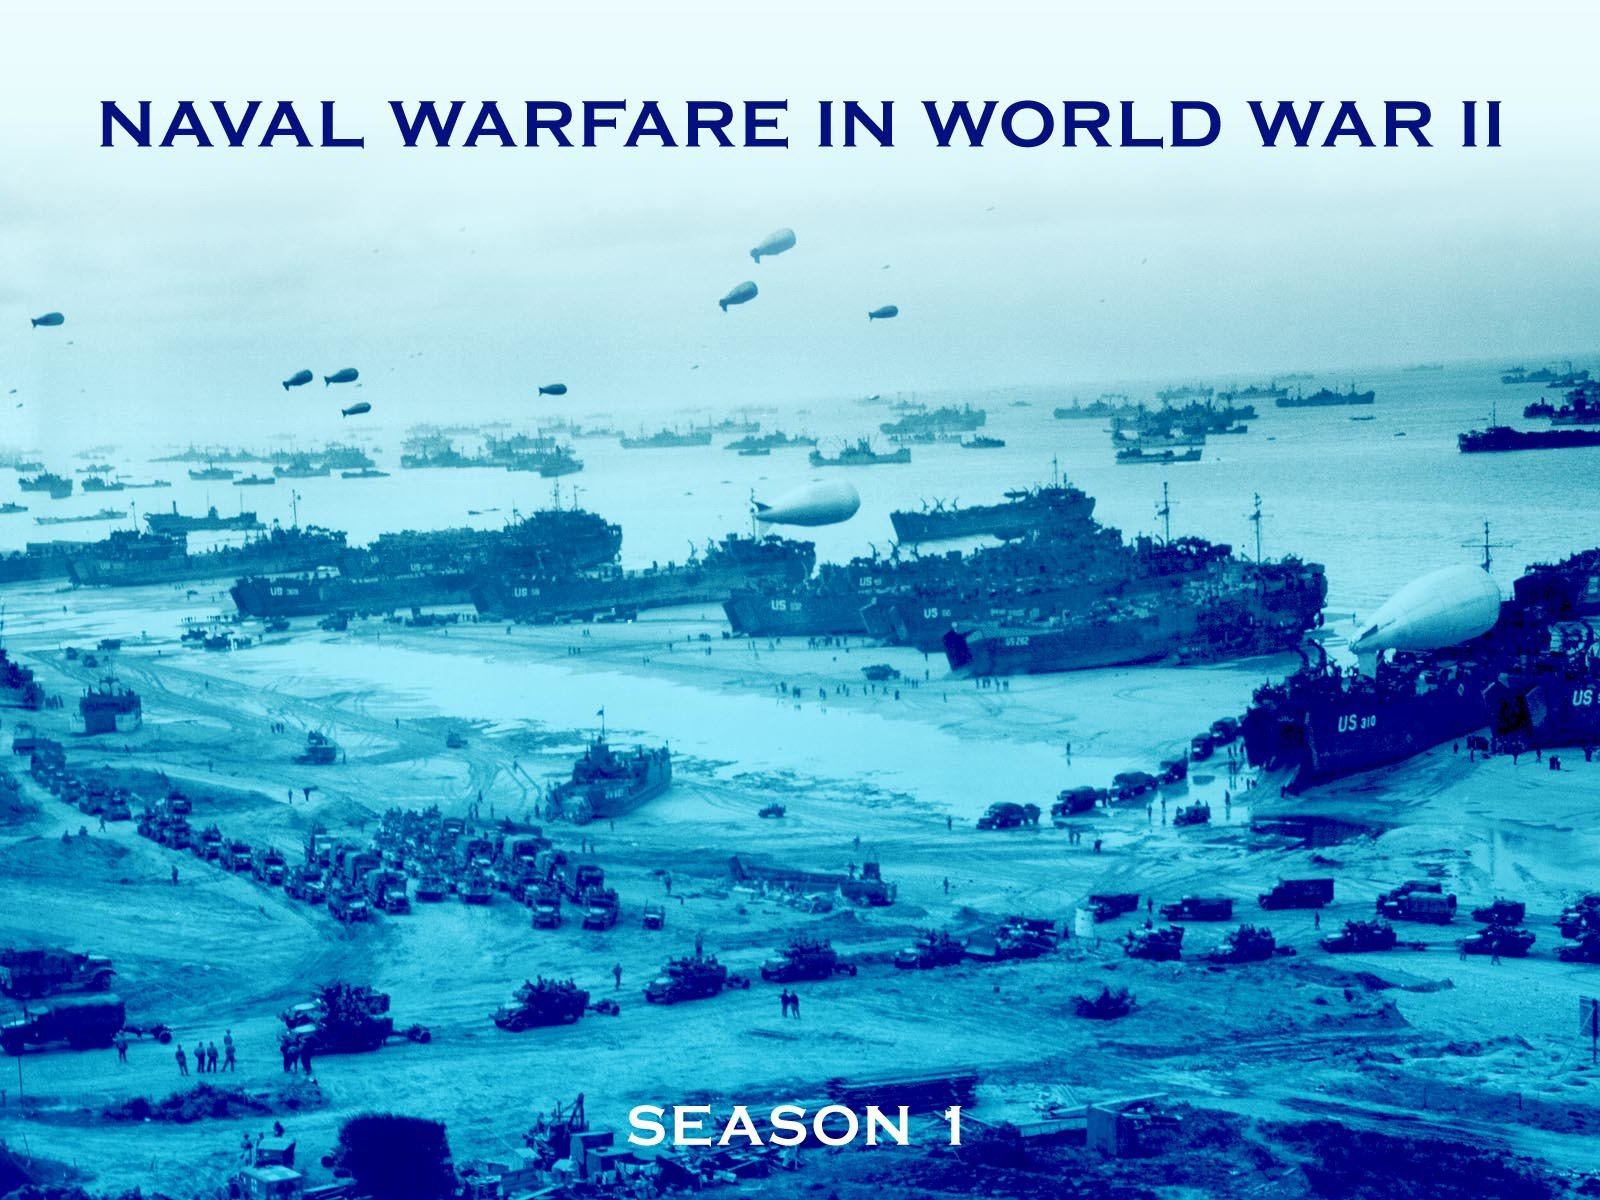 Naval Warfare in World War II - Season 1